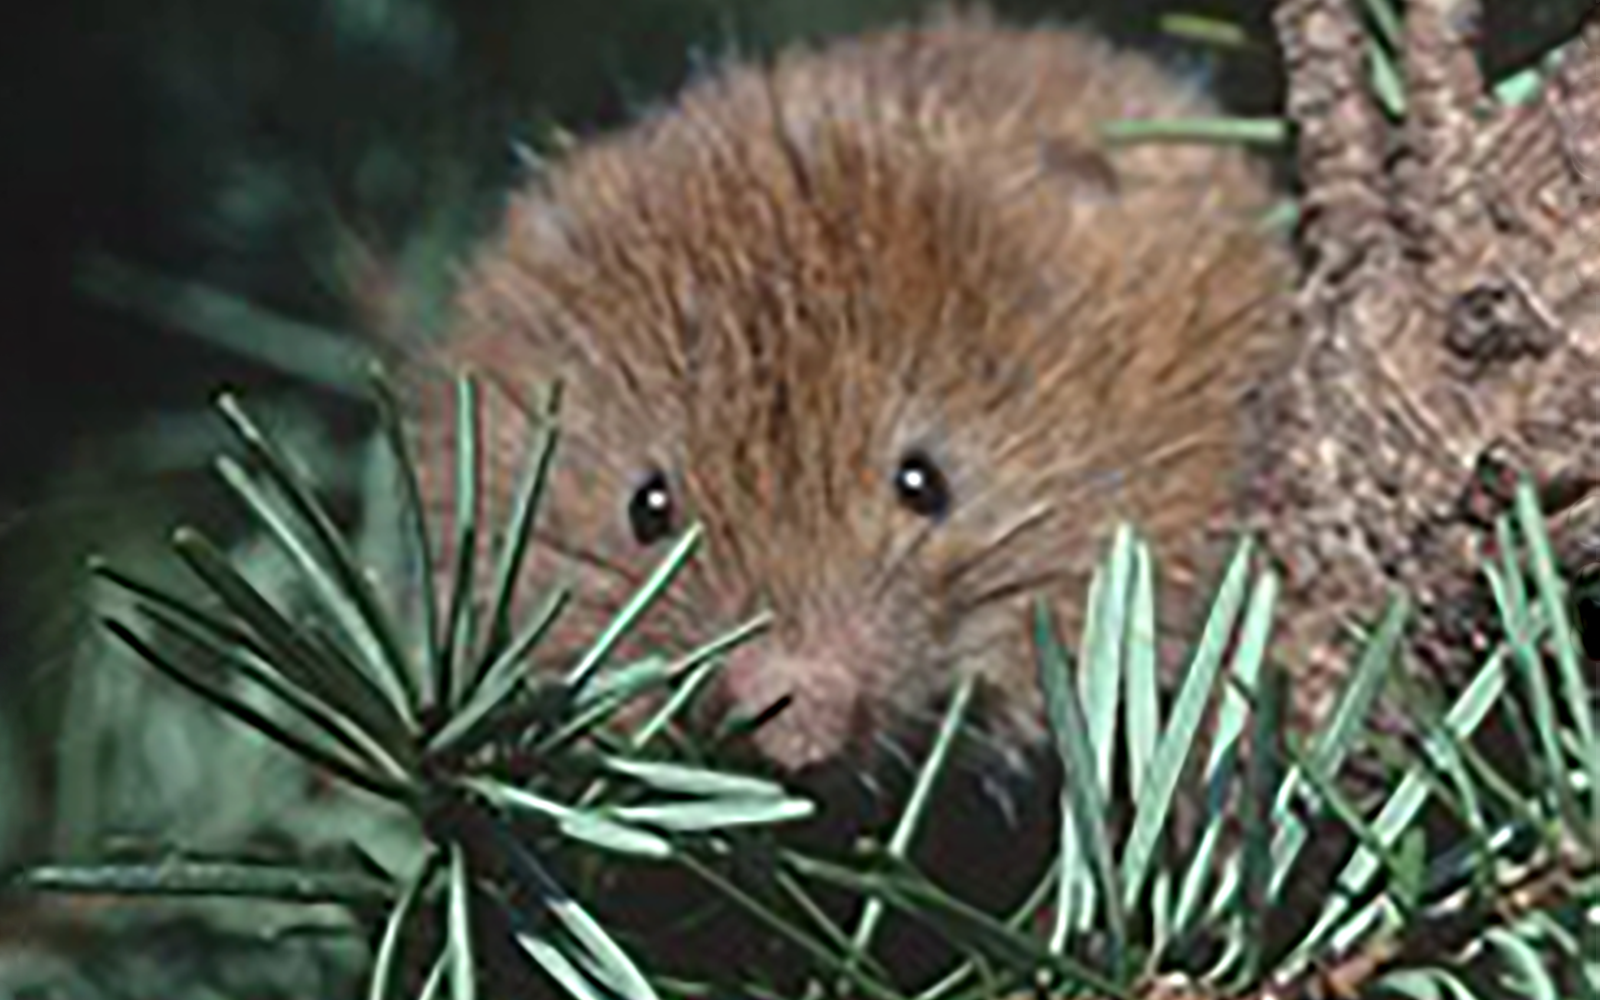 Press Release: Lawsuit Launched to Protect North Oregon Coast Red Tree Vole